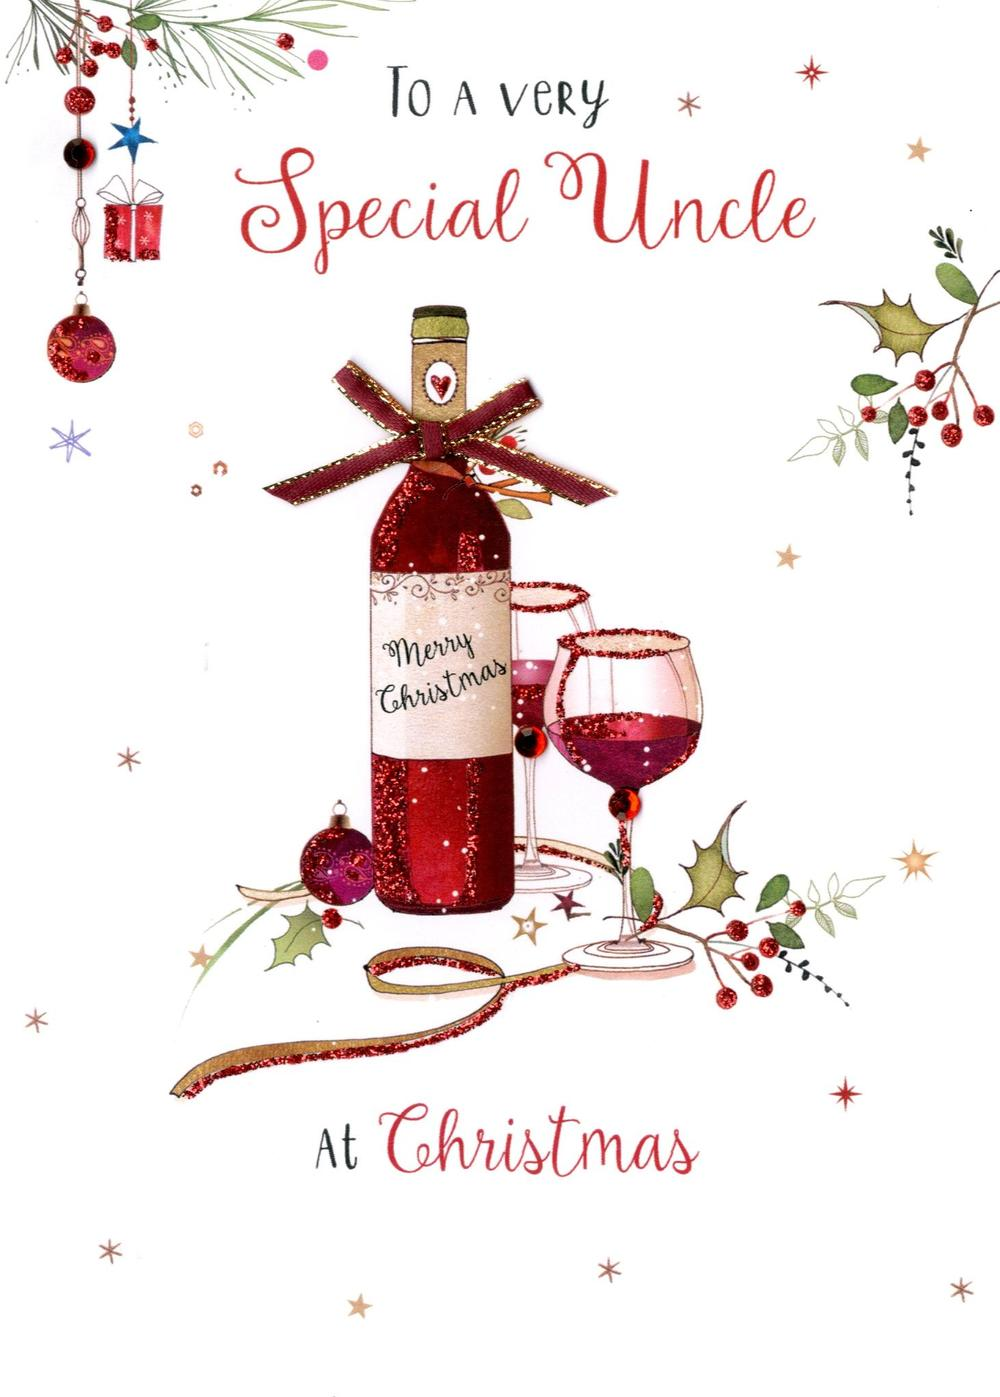 Special Uncle Embellished Christmas Card